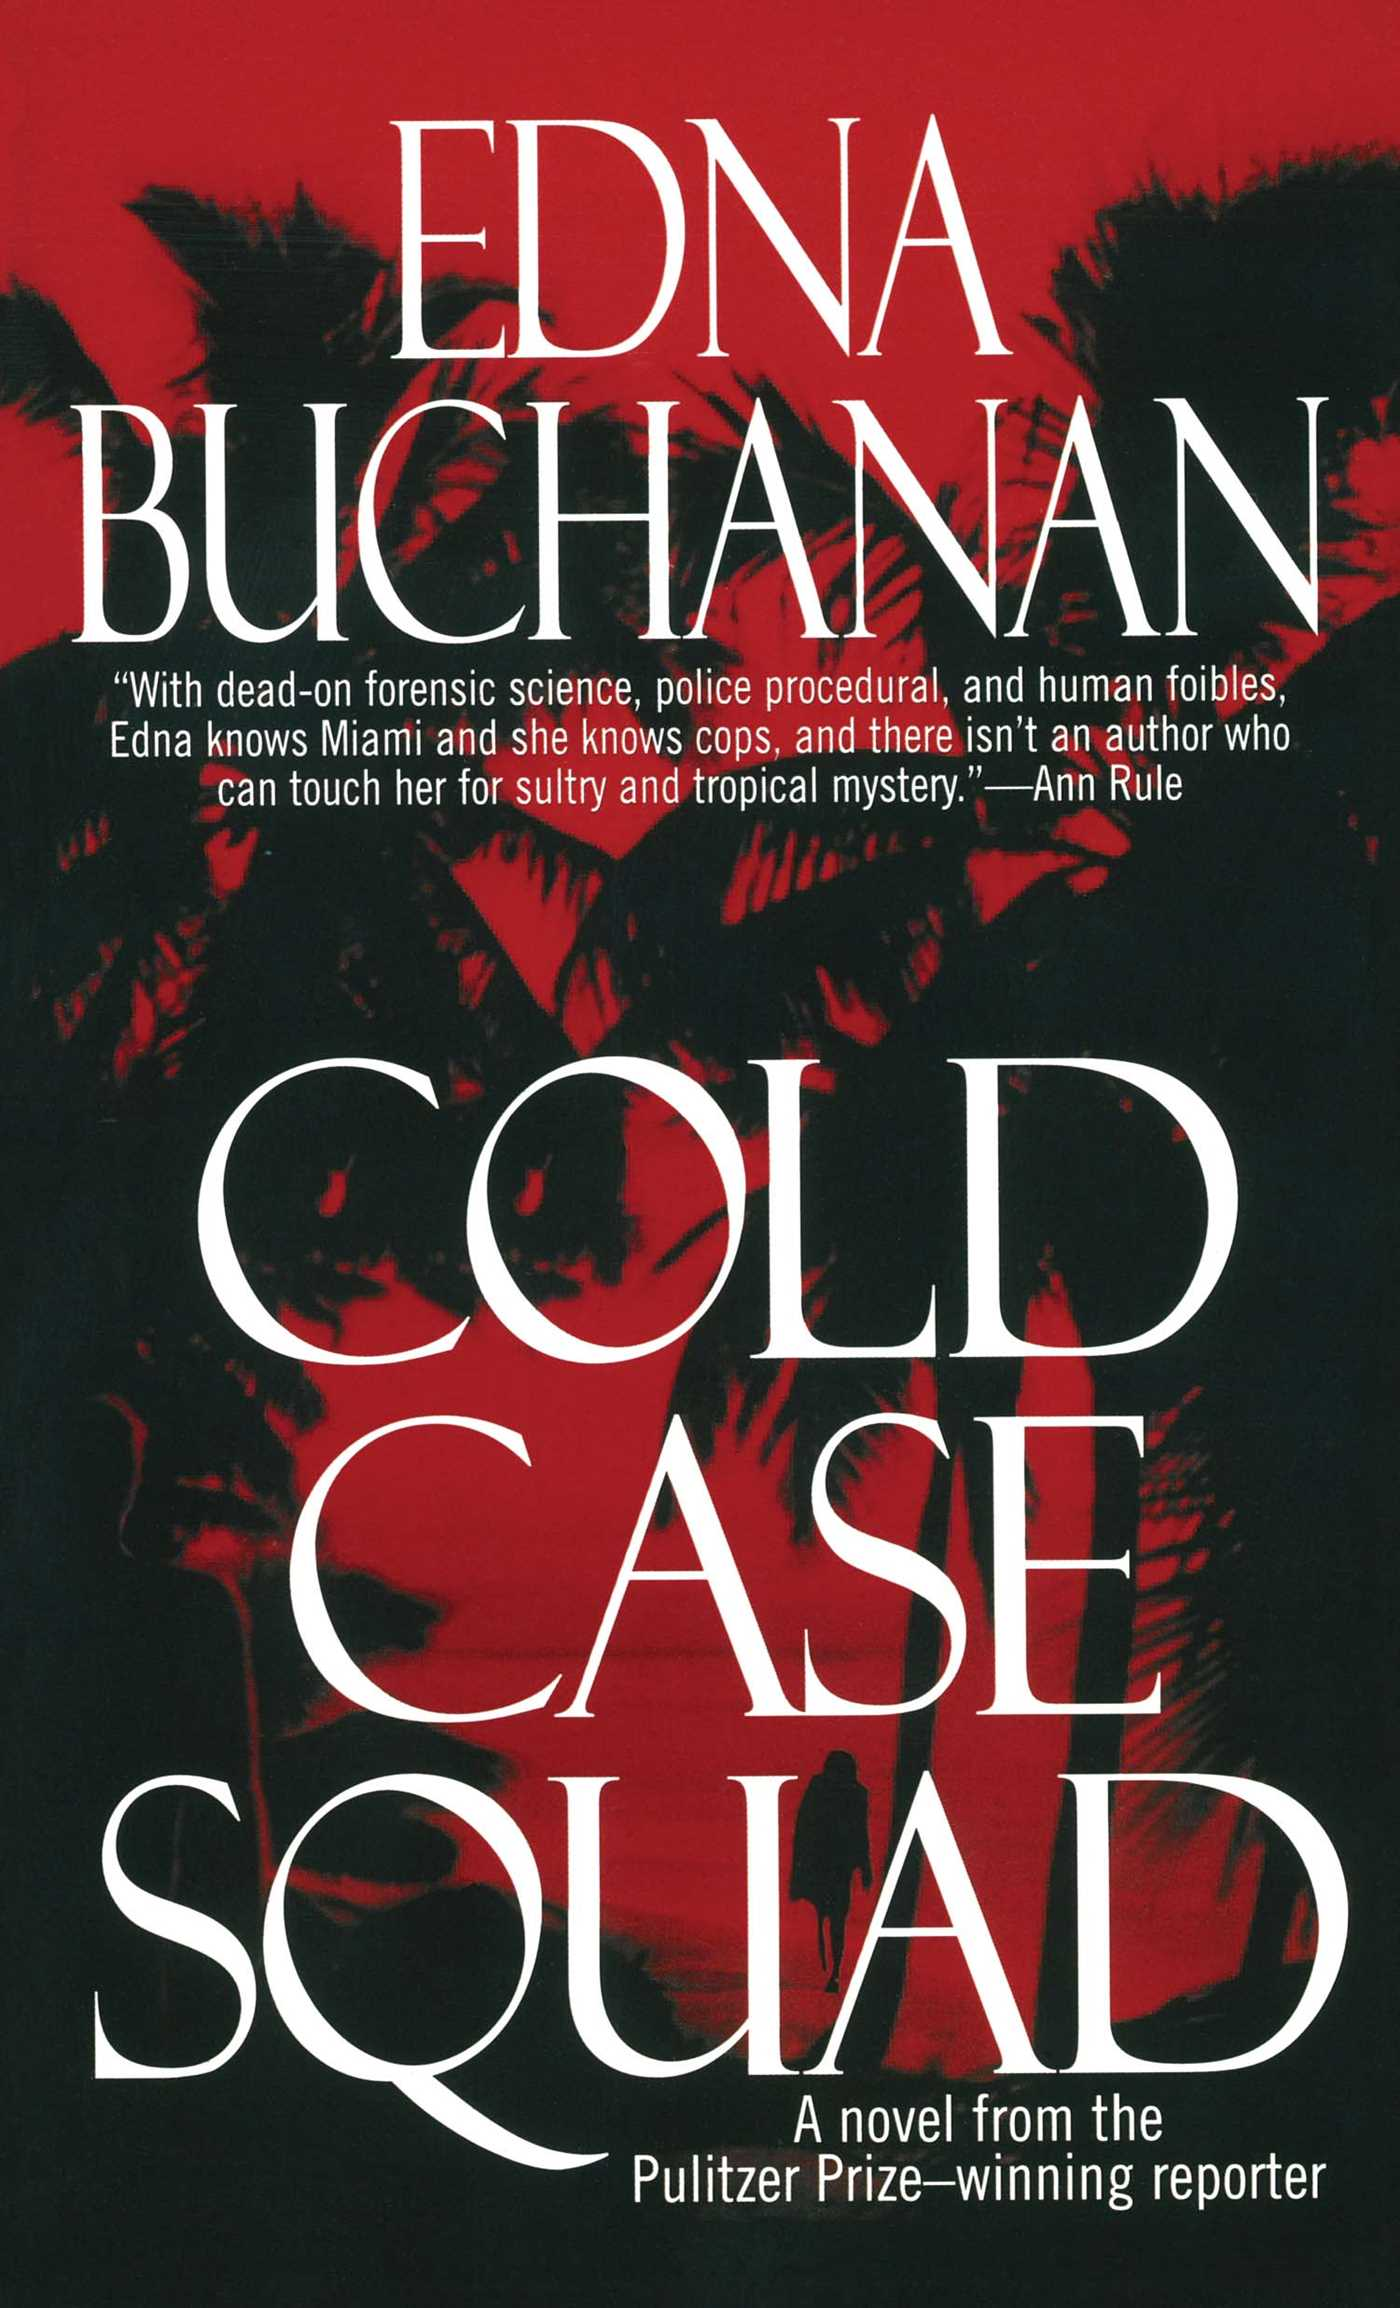 Cold-case-squad-9780743262903_hr